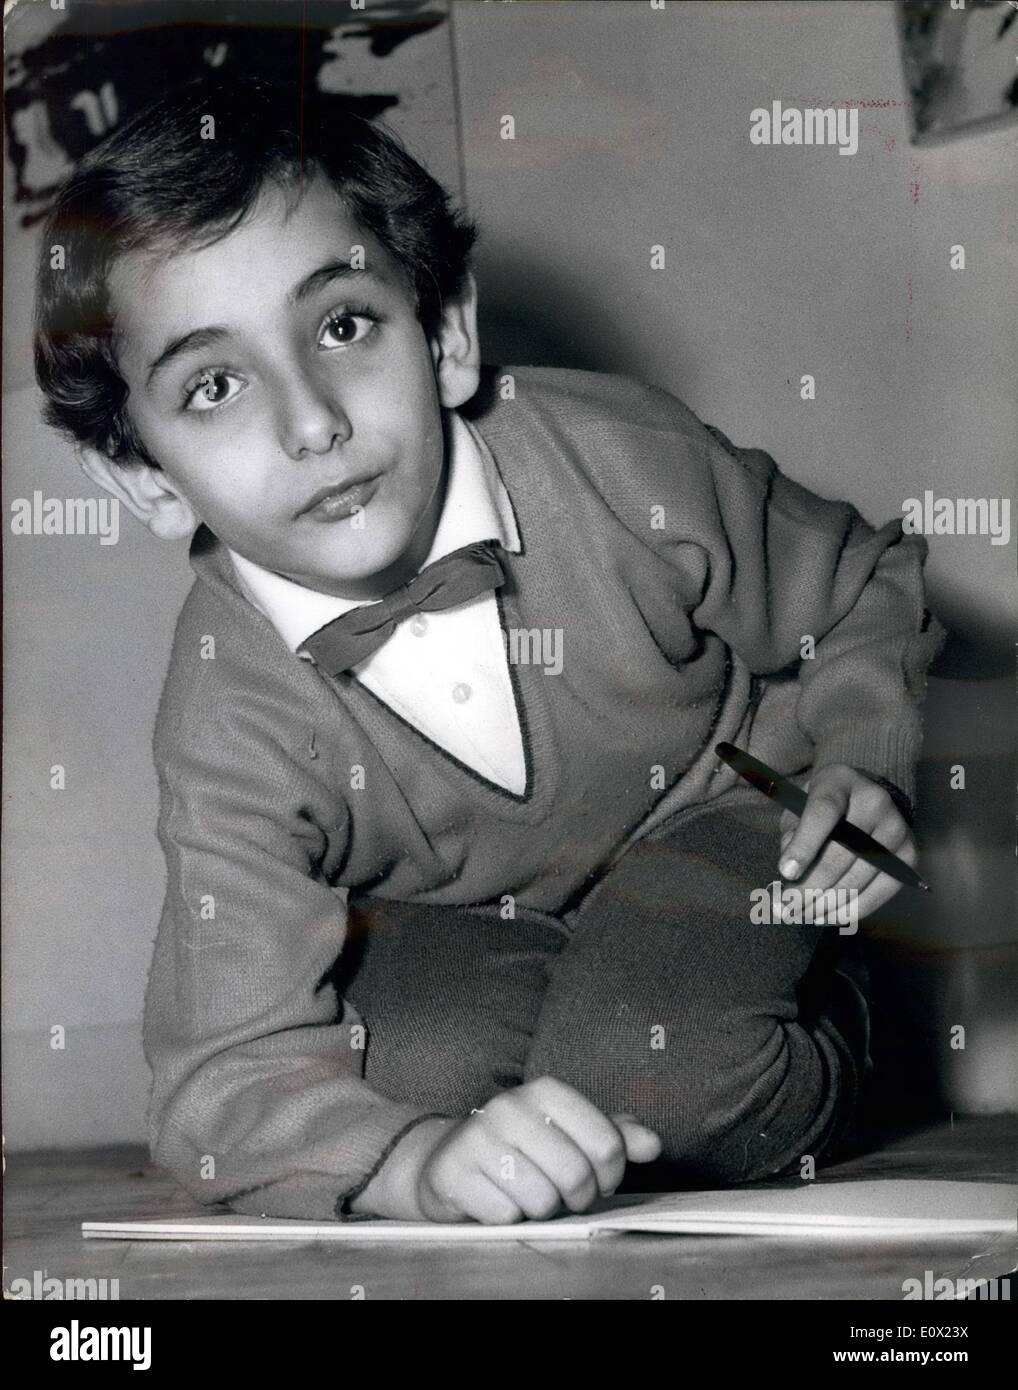 Nov. 11, 1964 - Bedri Baykam the 7 year old Turkish Wonder boy artist holds a press conference: Bedri Baykam, the seven year old Turkish Artist prodigy who has been called the 'Mozart of Art' arrived in London yesterday to give a one Boy Art Show at the Turkish Tourism Information Office at 49, Conduit St. w.l. it opens on Monday for two weeks. He started to draw at the age of two and he has now turned out 1,000 water colours and ,000 drawings and he can do them with either hand. He has also given shows in Paris, Vienna, Geneva and Bern - Stock Image